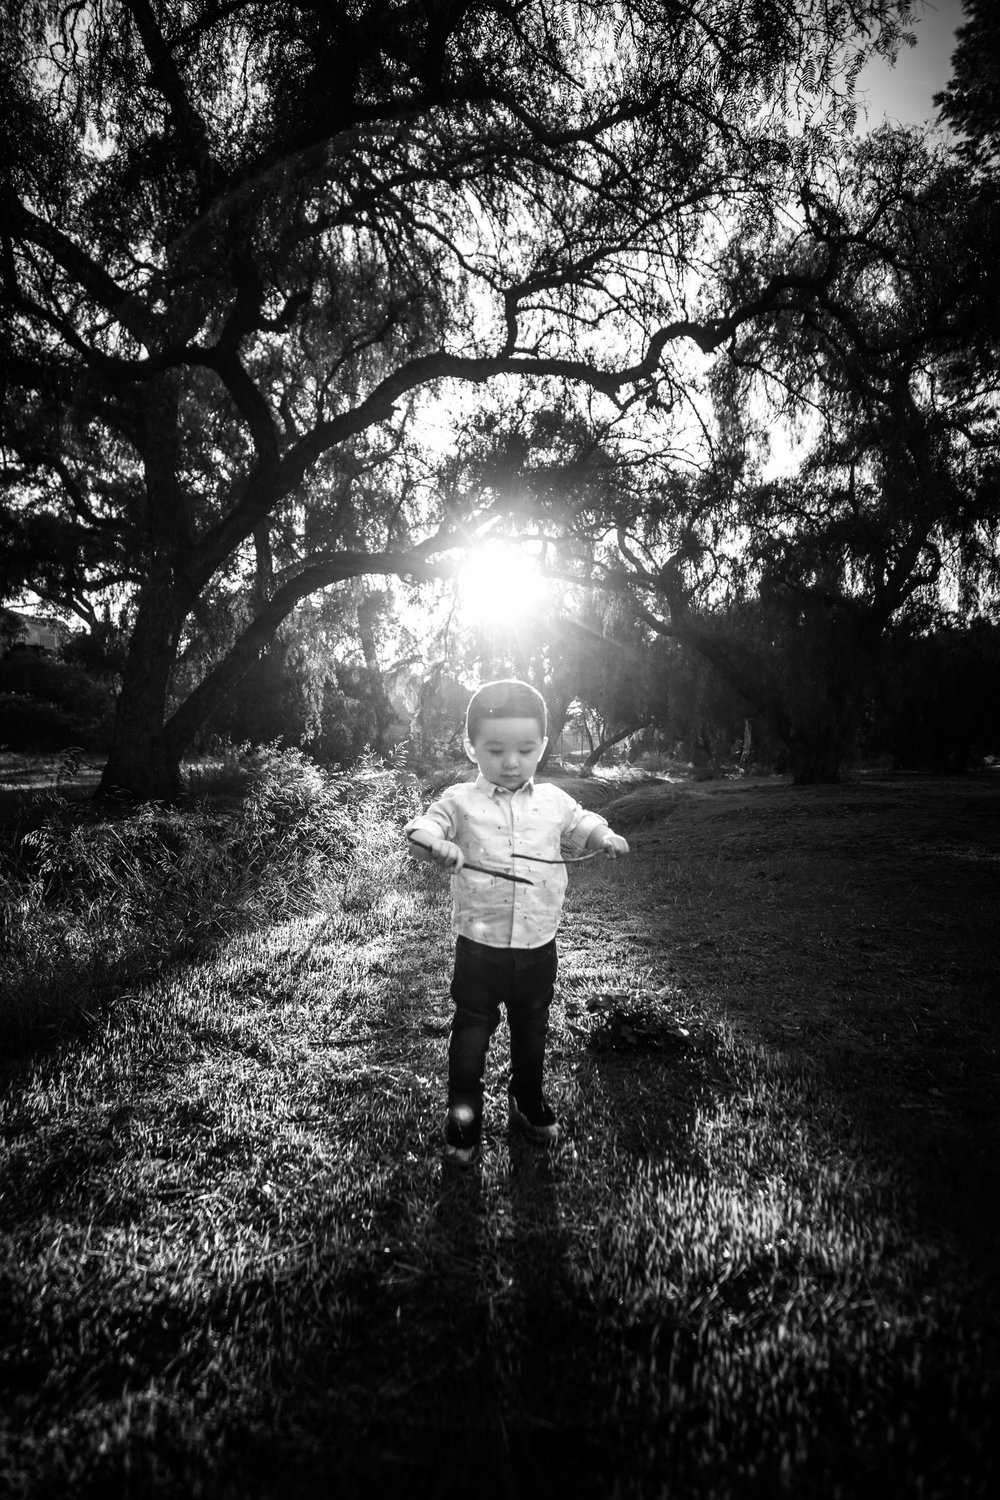 black and white Candid portrait of a little boy playing during a Family portrait photo shoot in Fullerton on the Juanita Cooke Hiking Trail with green trees and grass and the golden hour sun